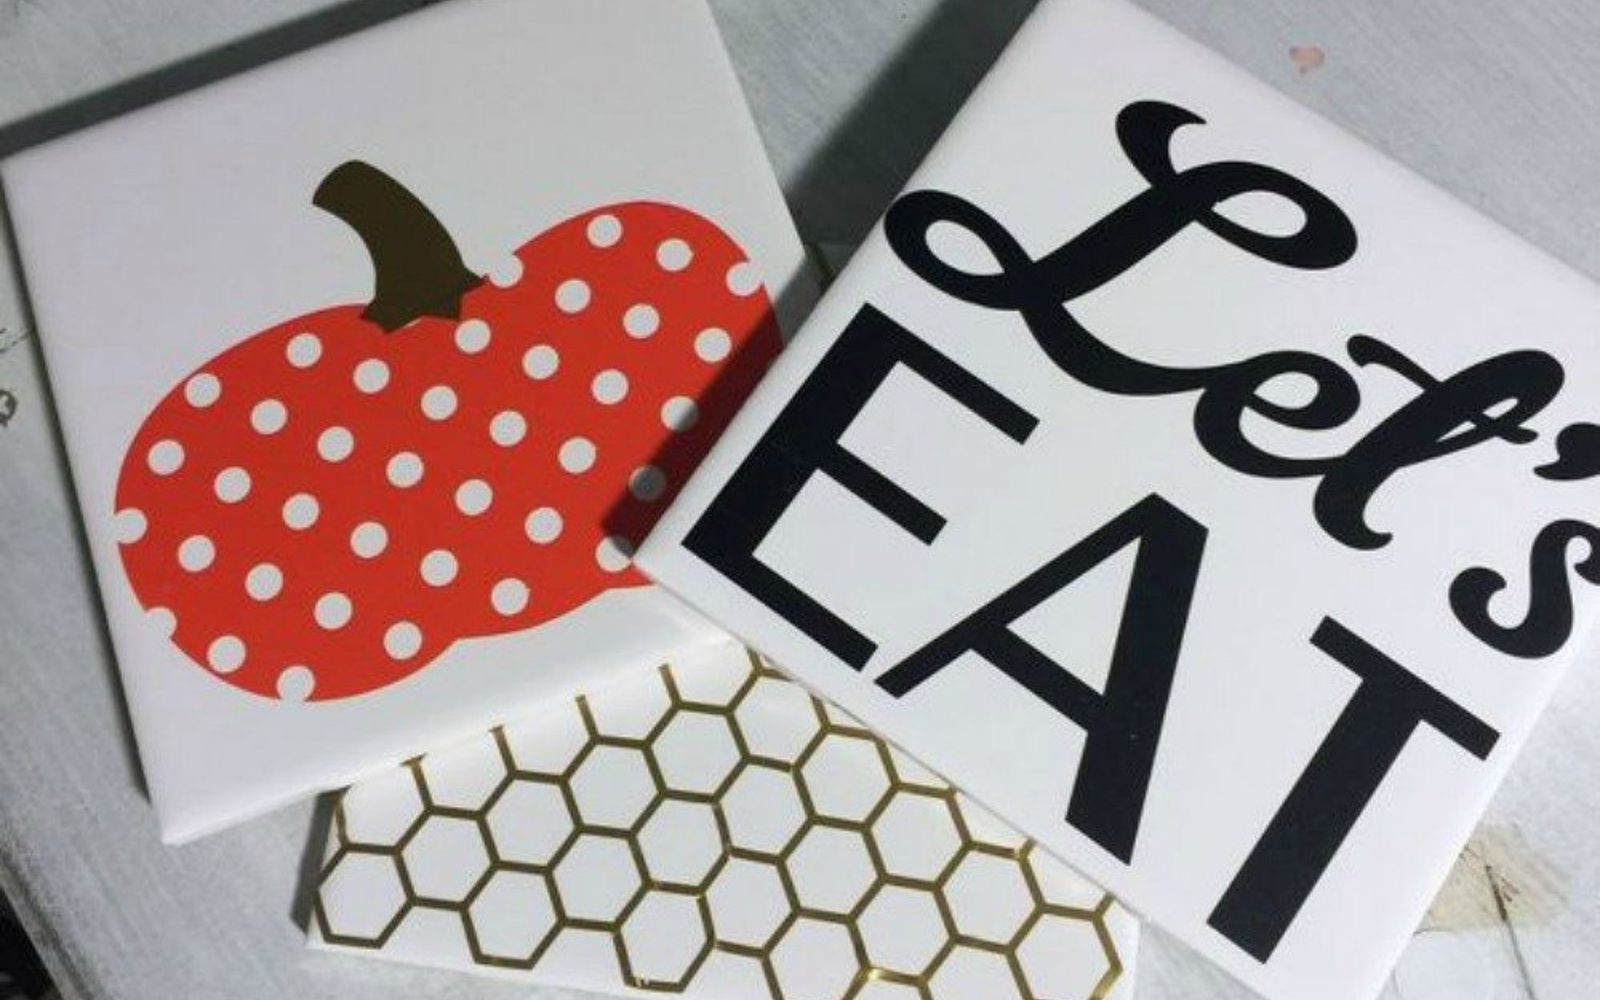 s x ways you never thought of using tile in your home, home decor, As the cute food trivets on your dinner table